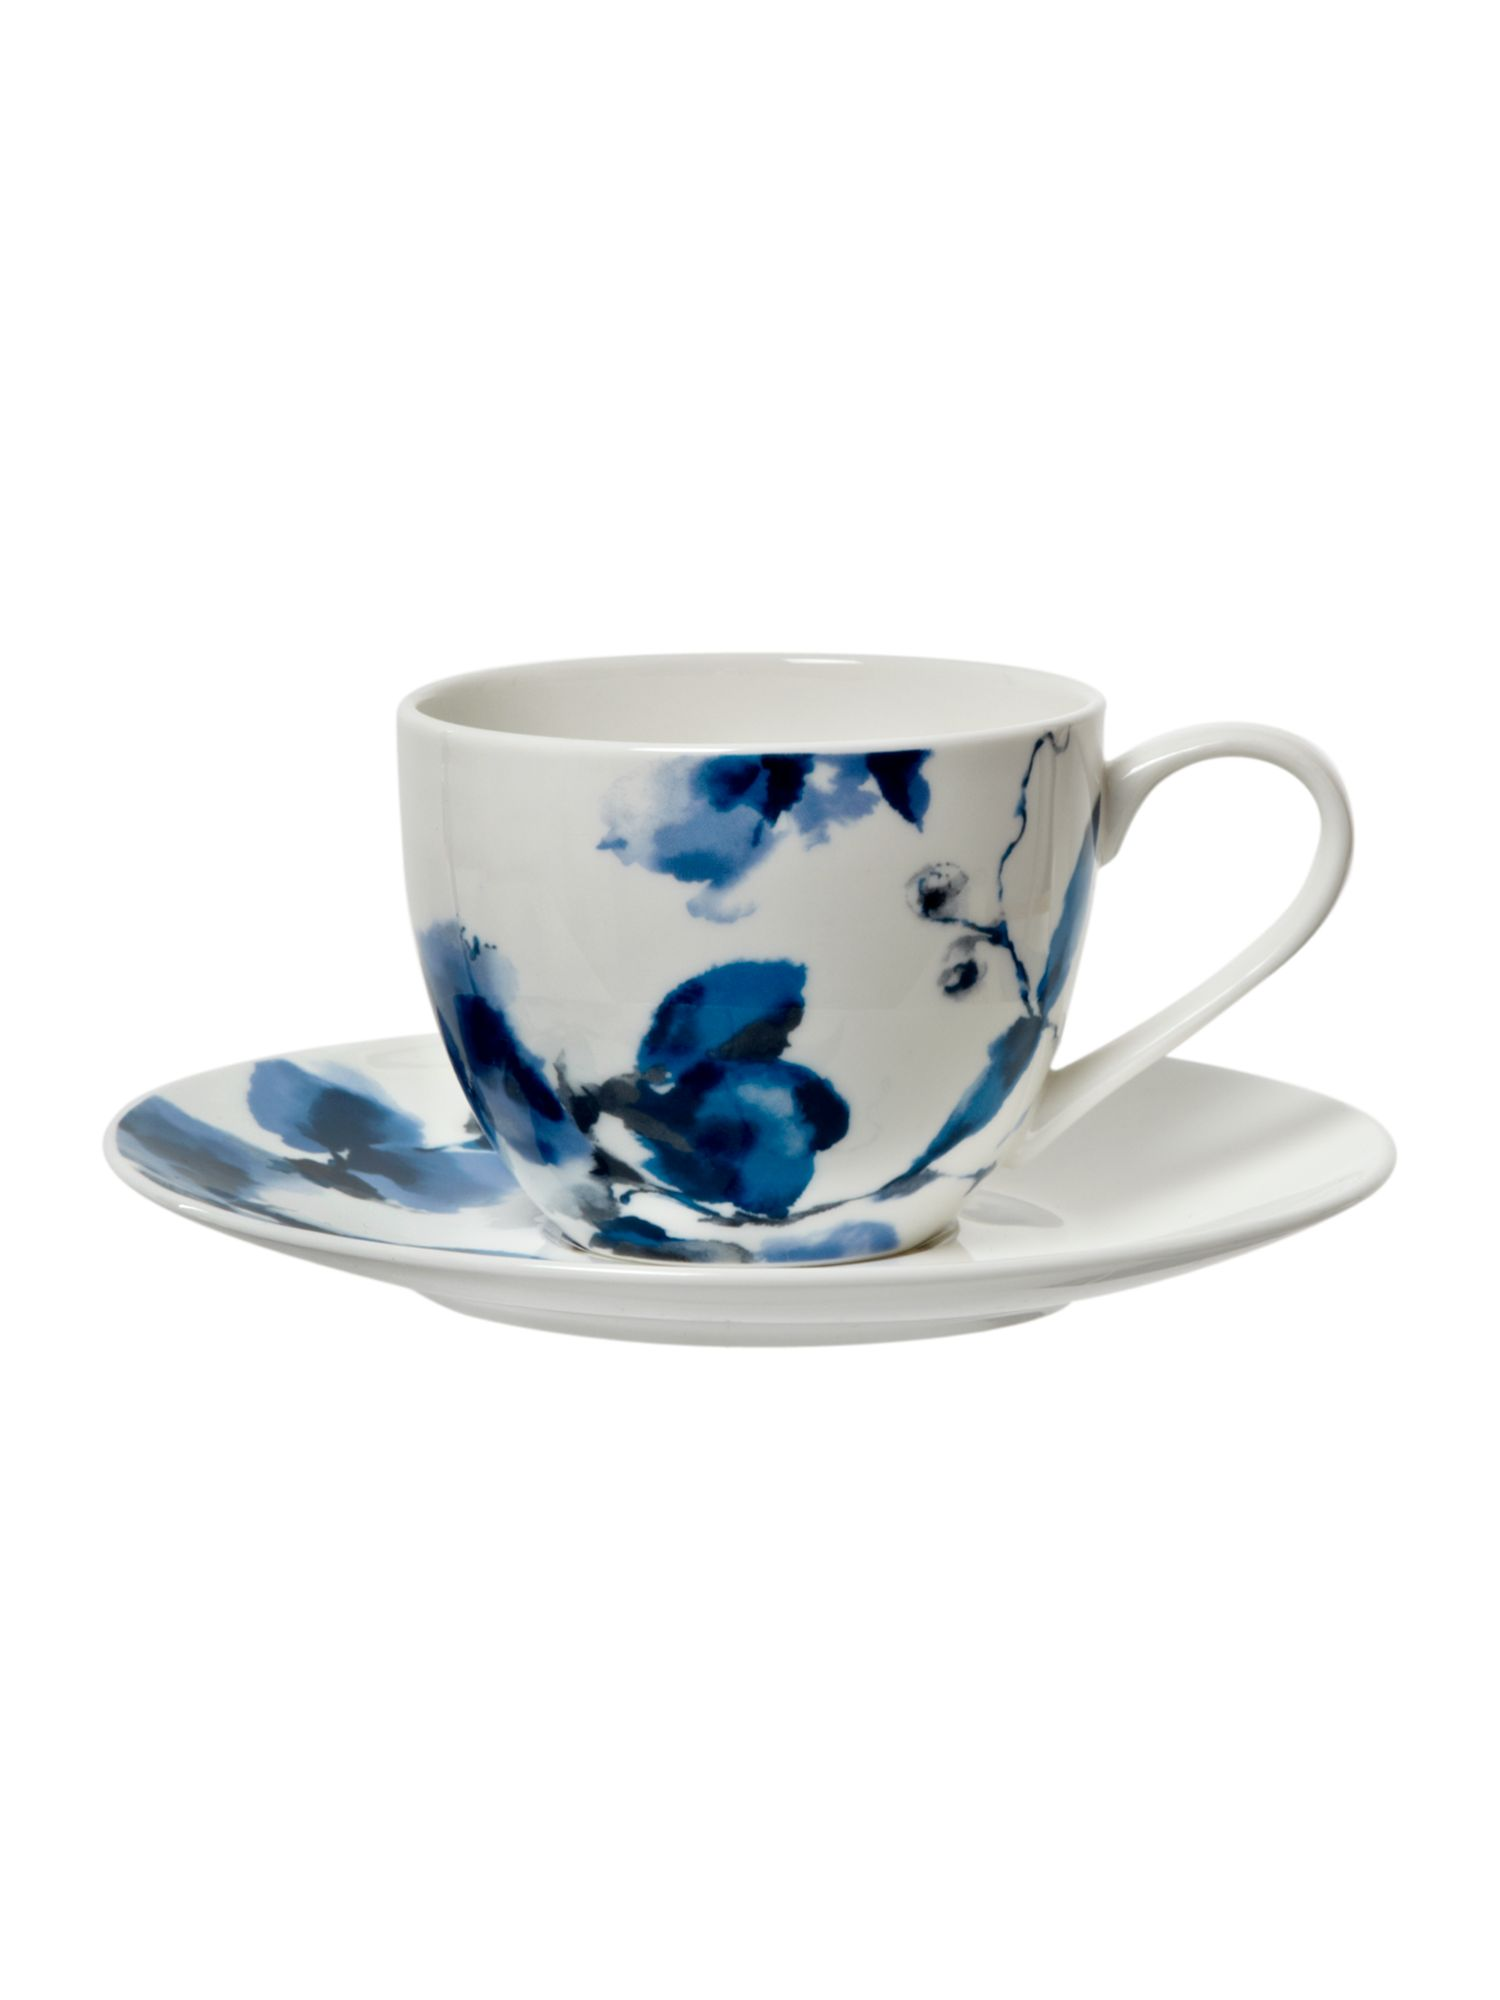 Watercolour floral teacup and saucer